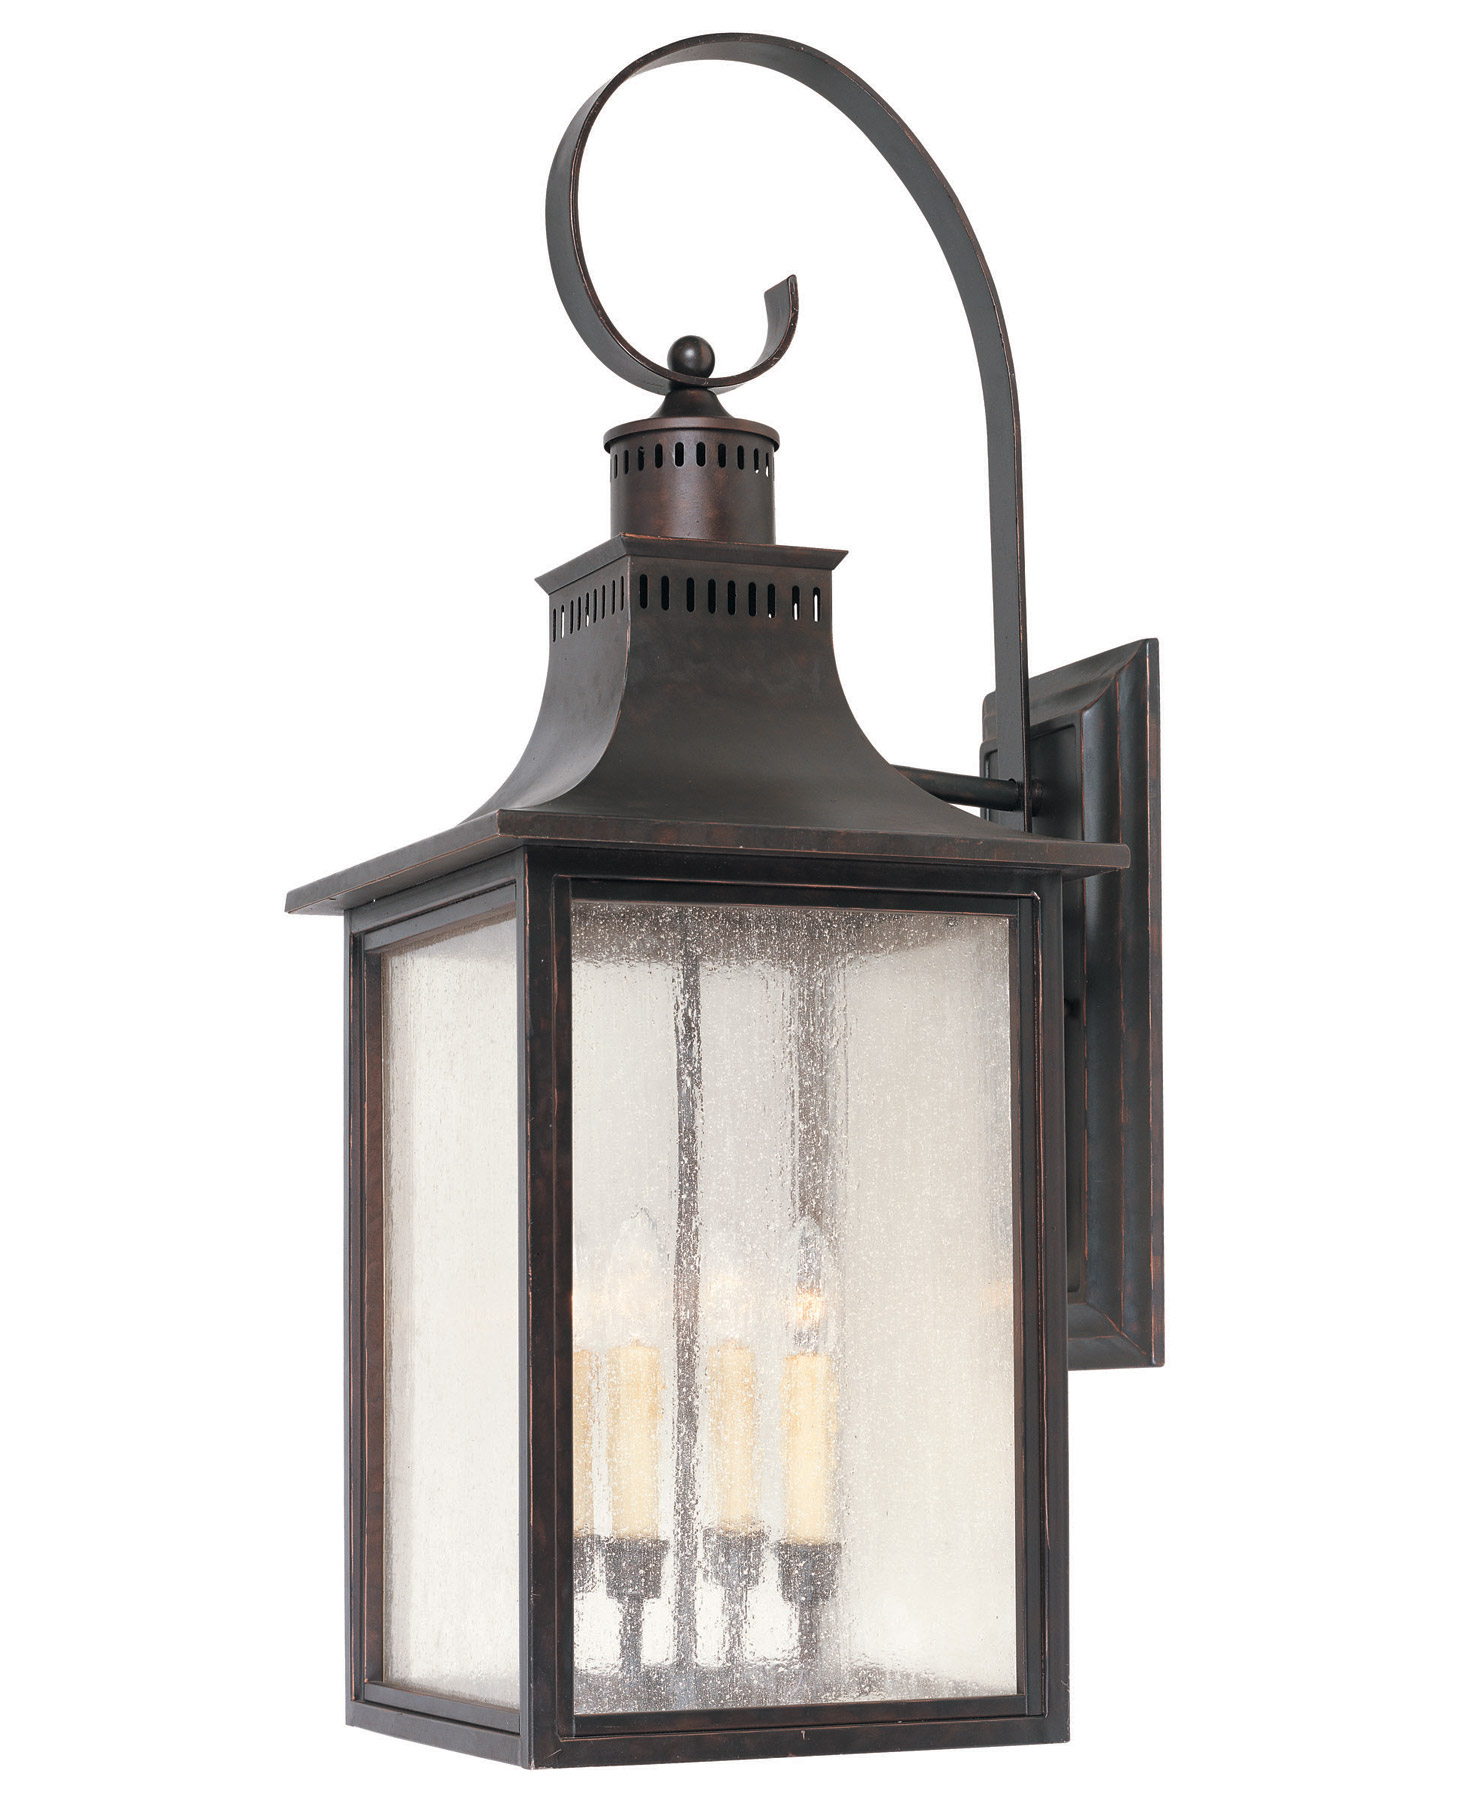 Savoy house 5 257 13 monte grande outdoor wall mount lantern for Landscape lighting products